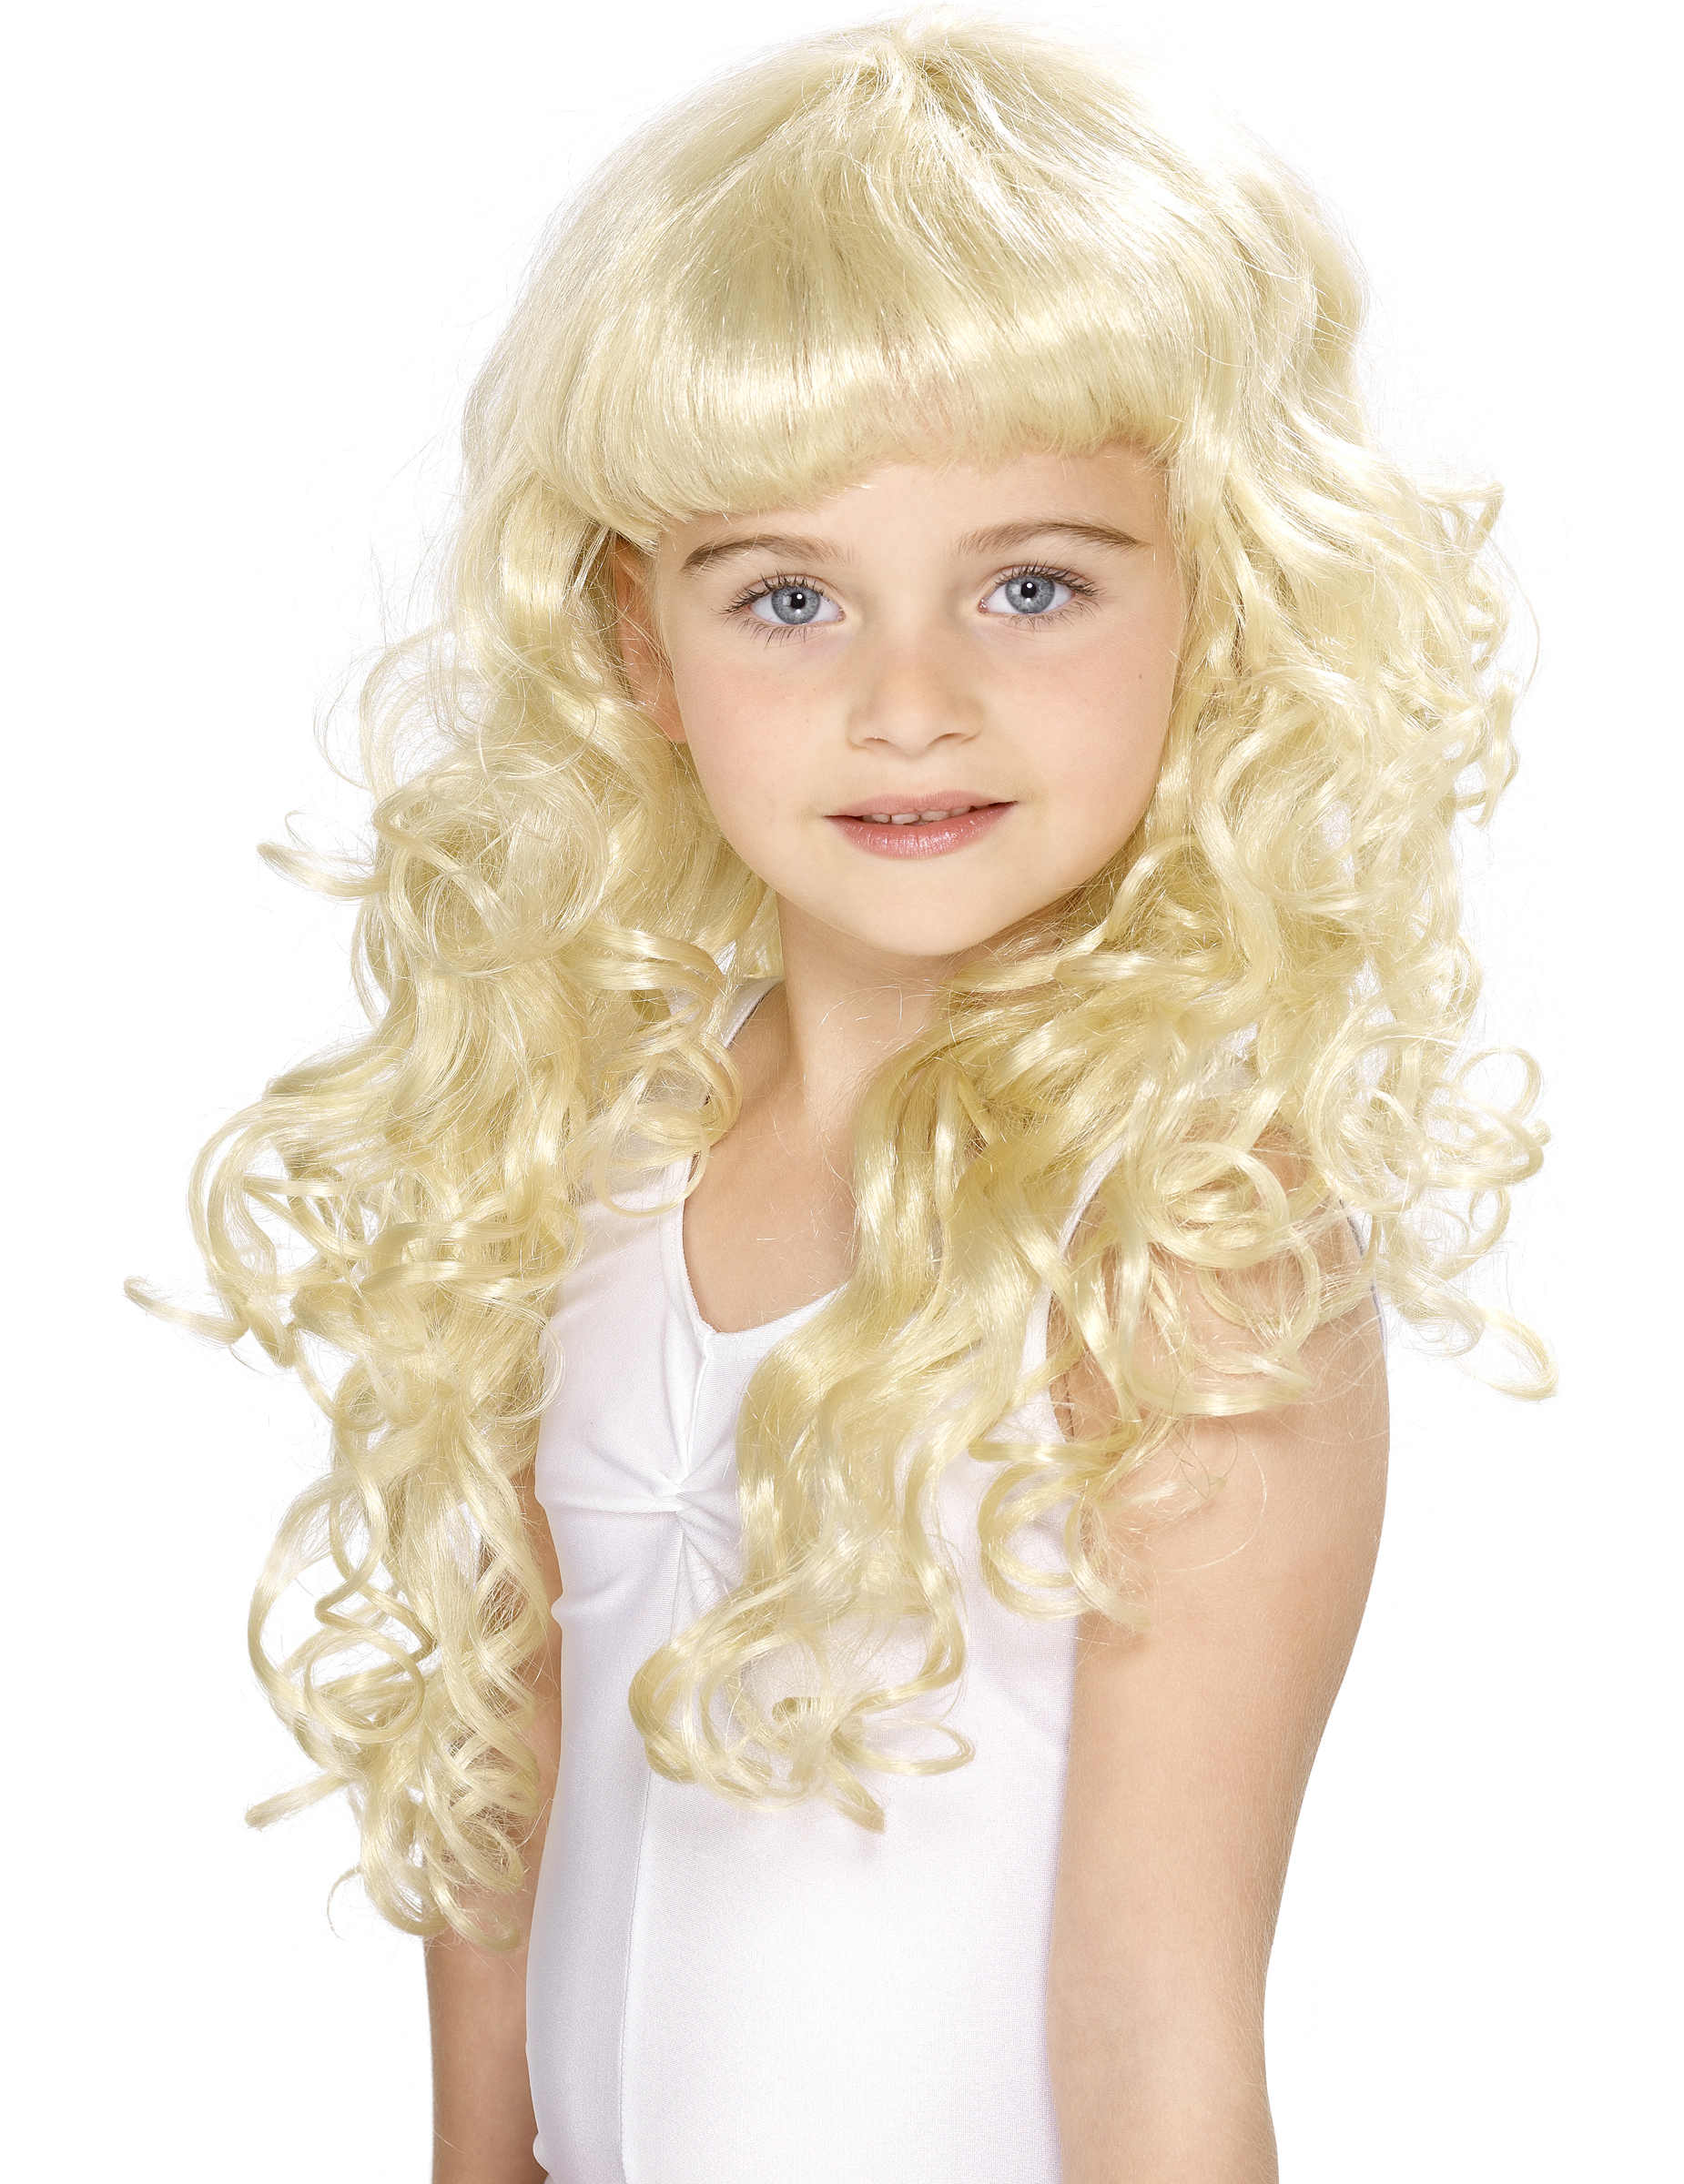 Perruque blonde de princesse fille : Deguise-